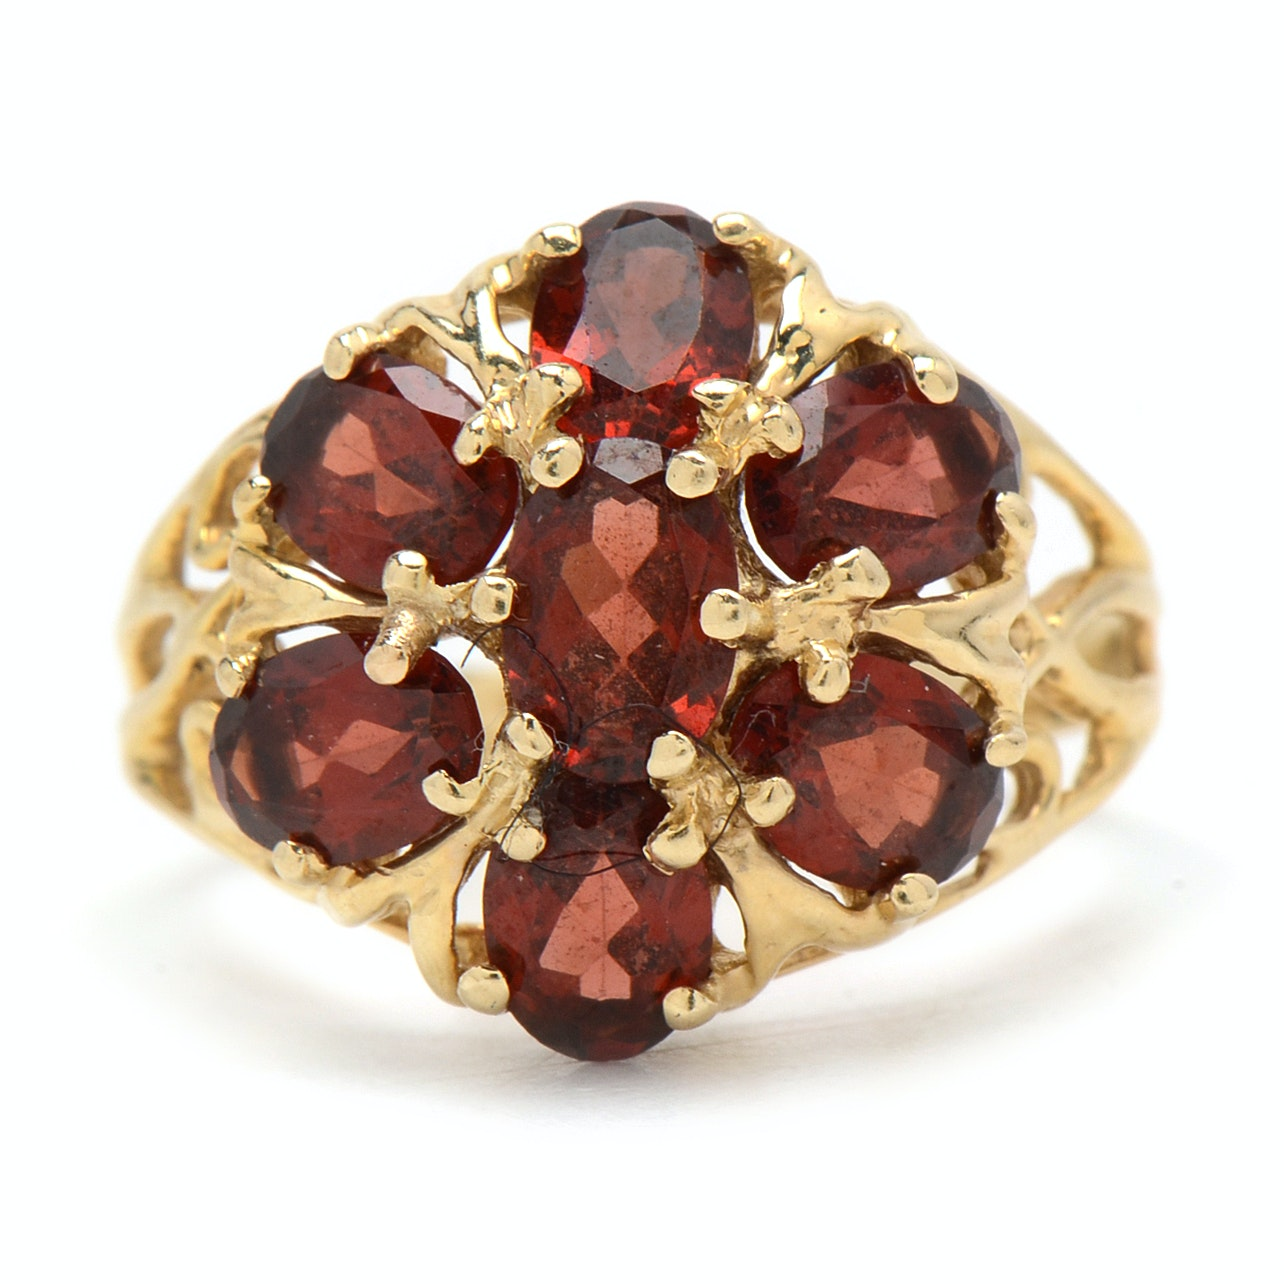 14K Yellow Gold and Garnet Cocktail Ring